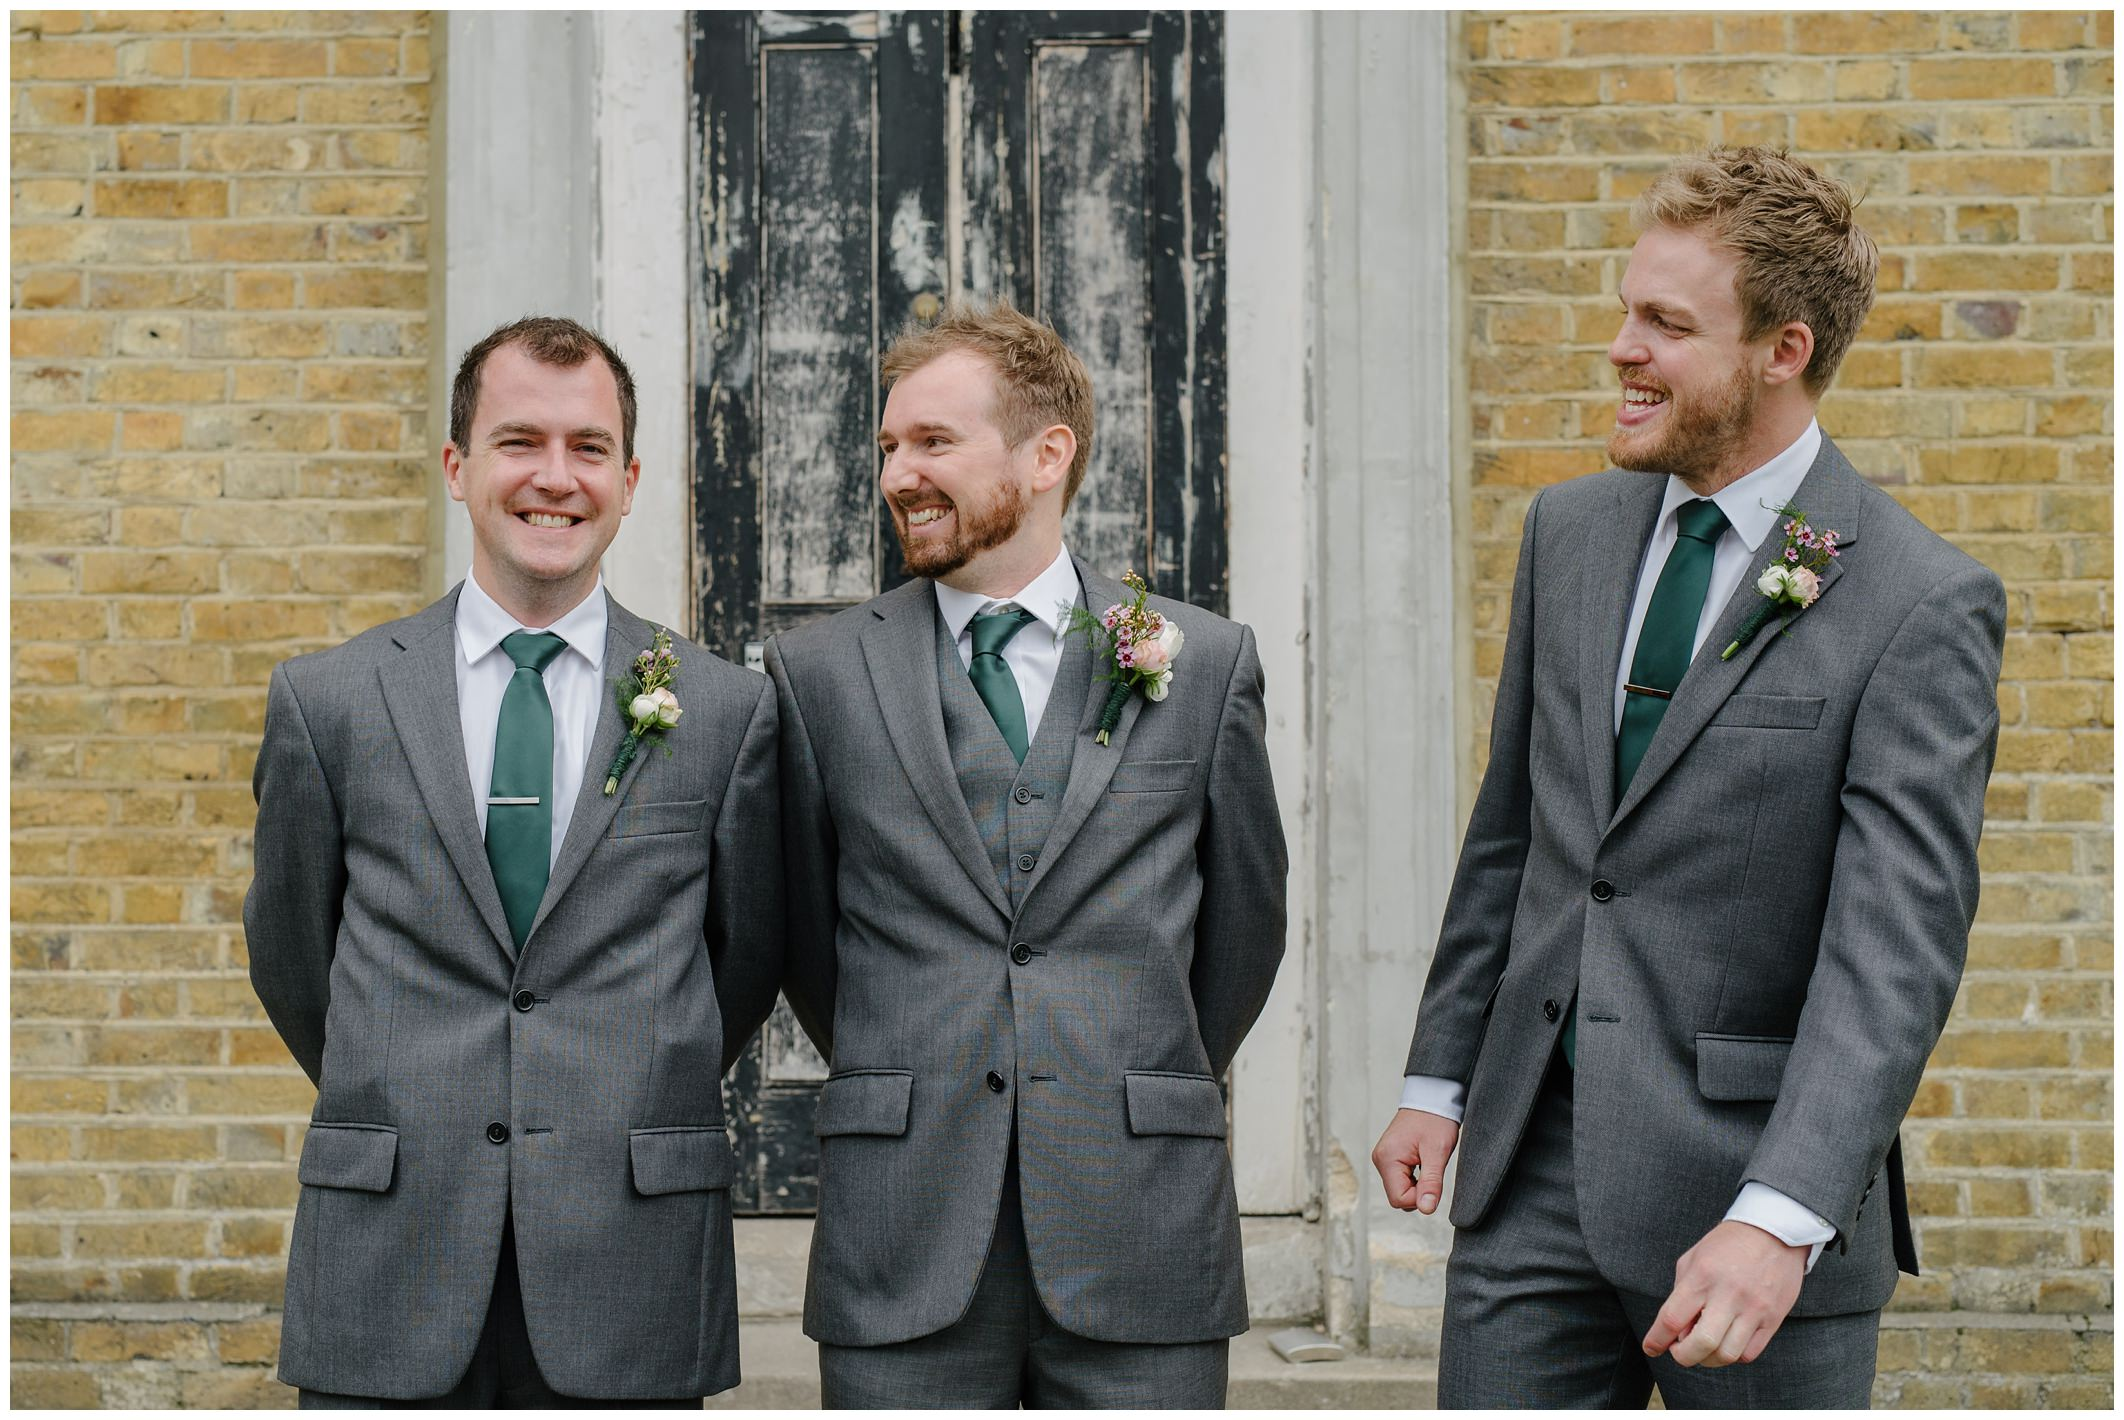 asylum_chapel_peckham_rosendale_wedding_jude_browne_photography_0037.jpg